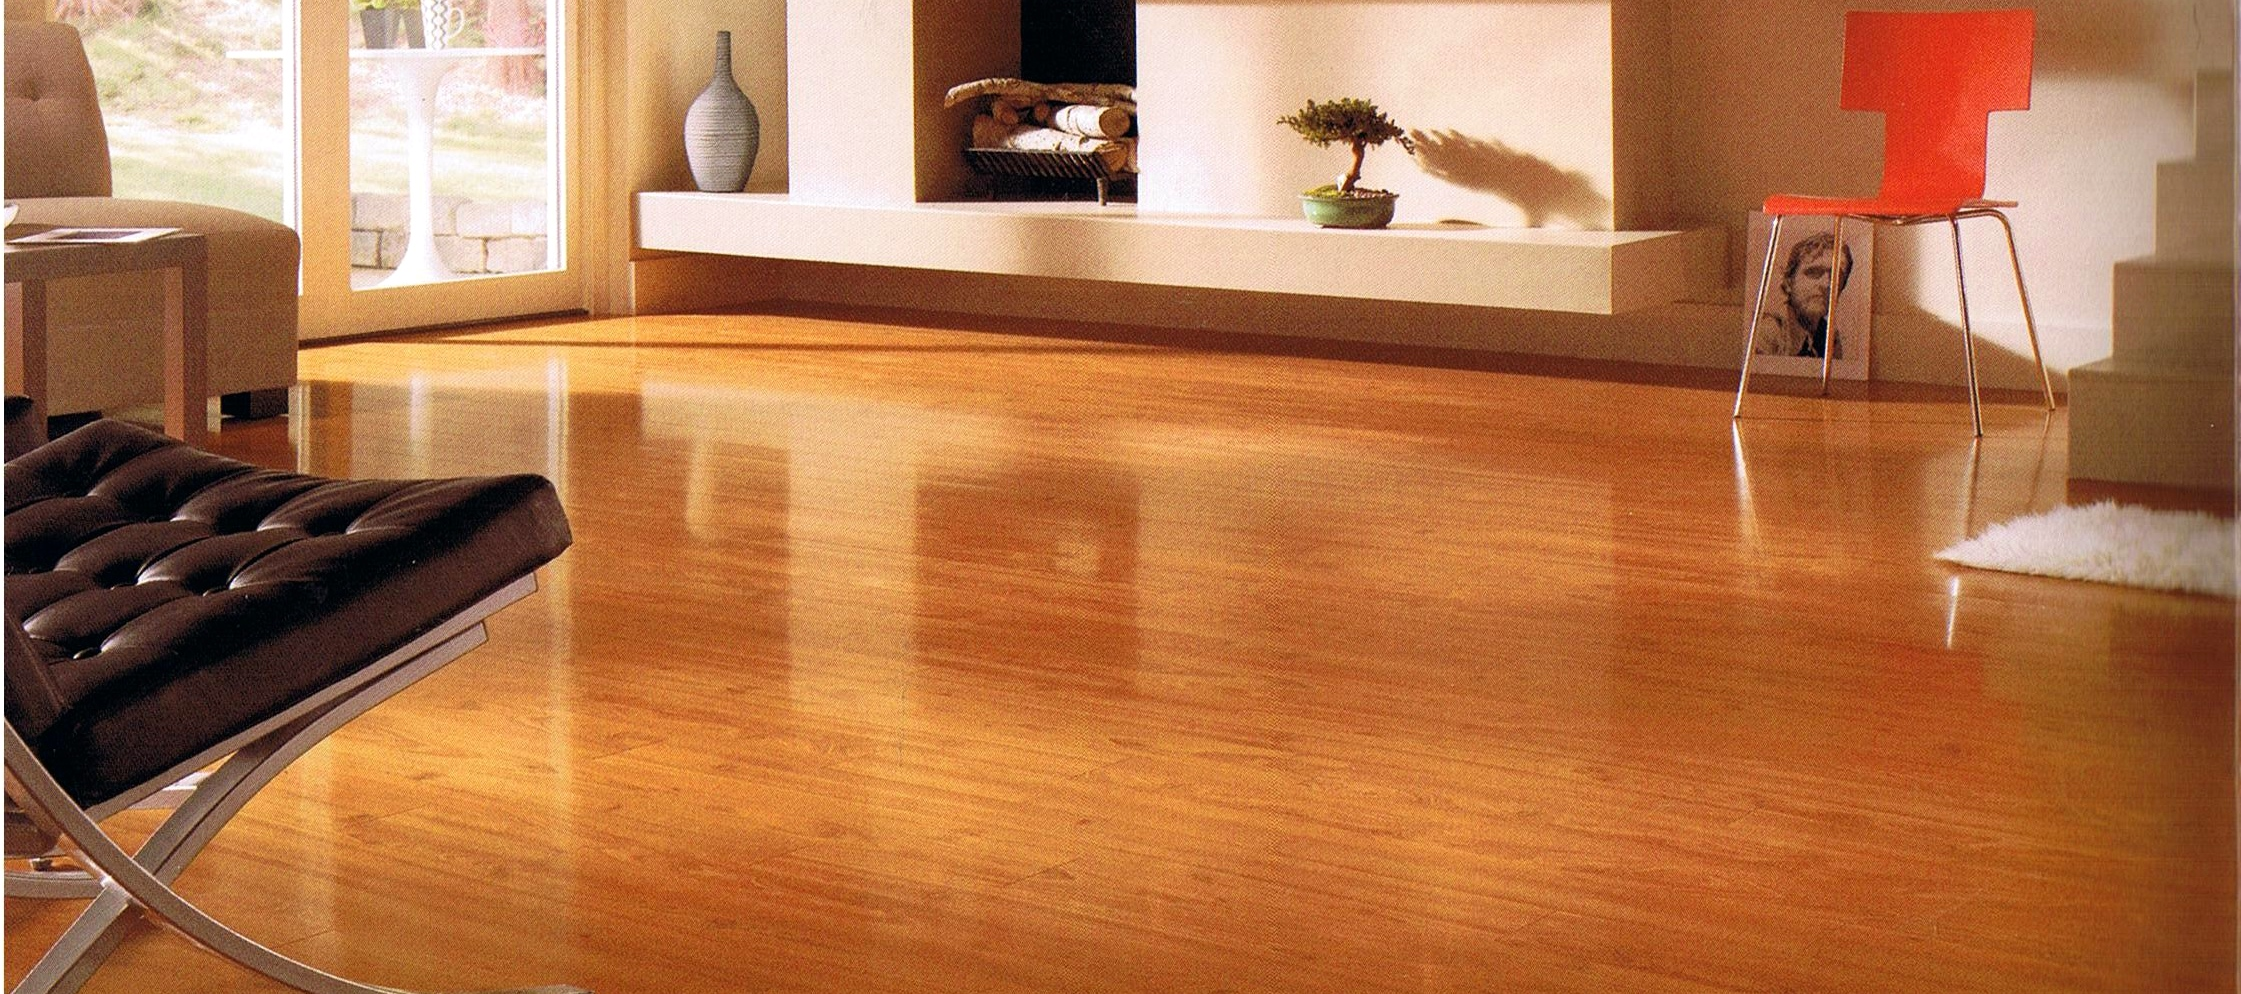 Laminate flooring vancouver bc carpet laminate for Hardwood floors vancouver